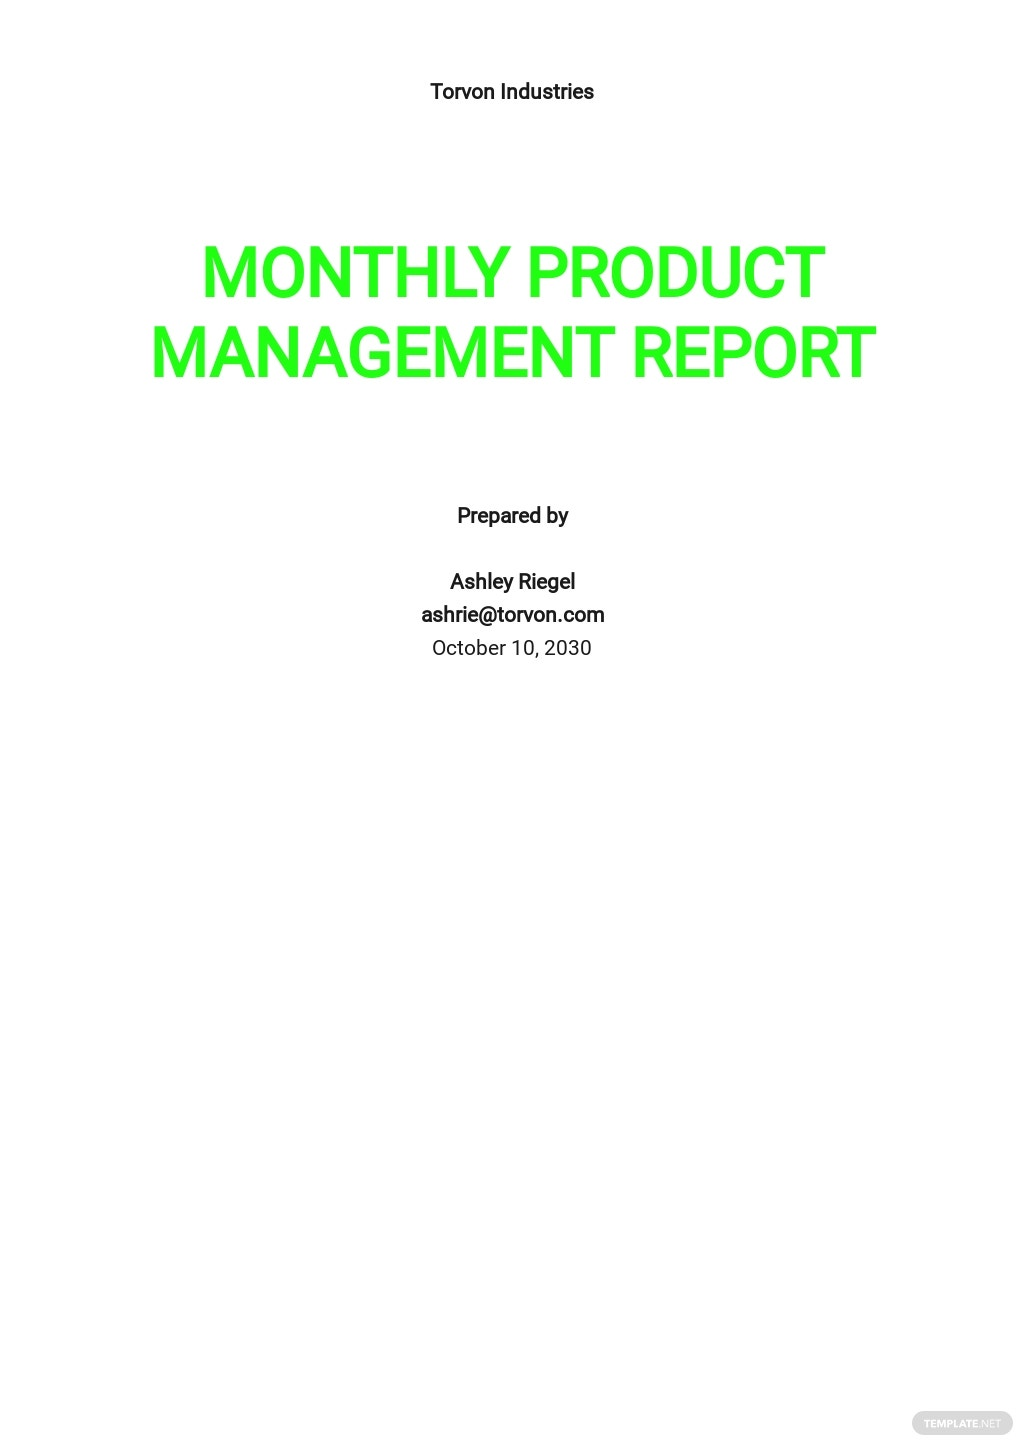 Monthly Product Management Report Template